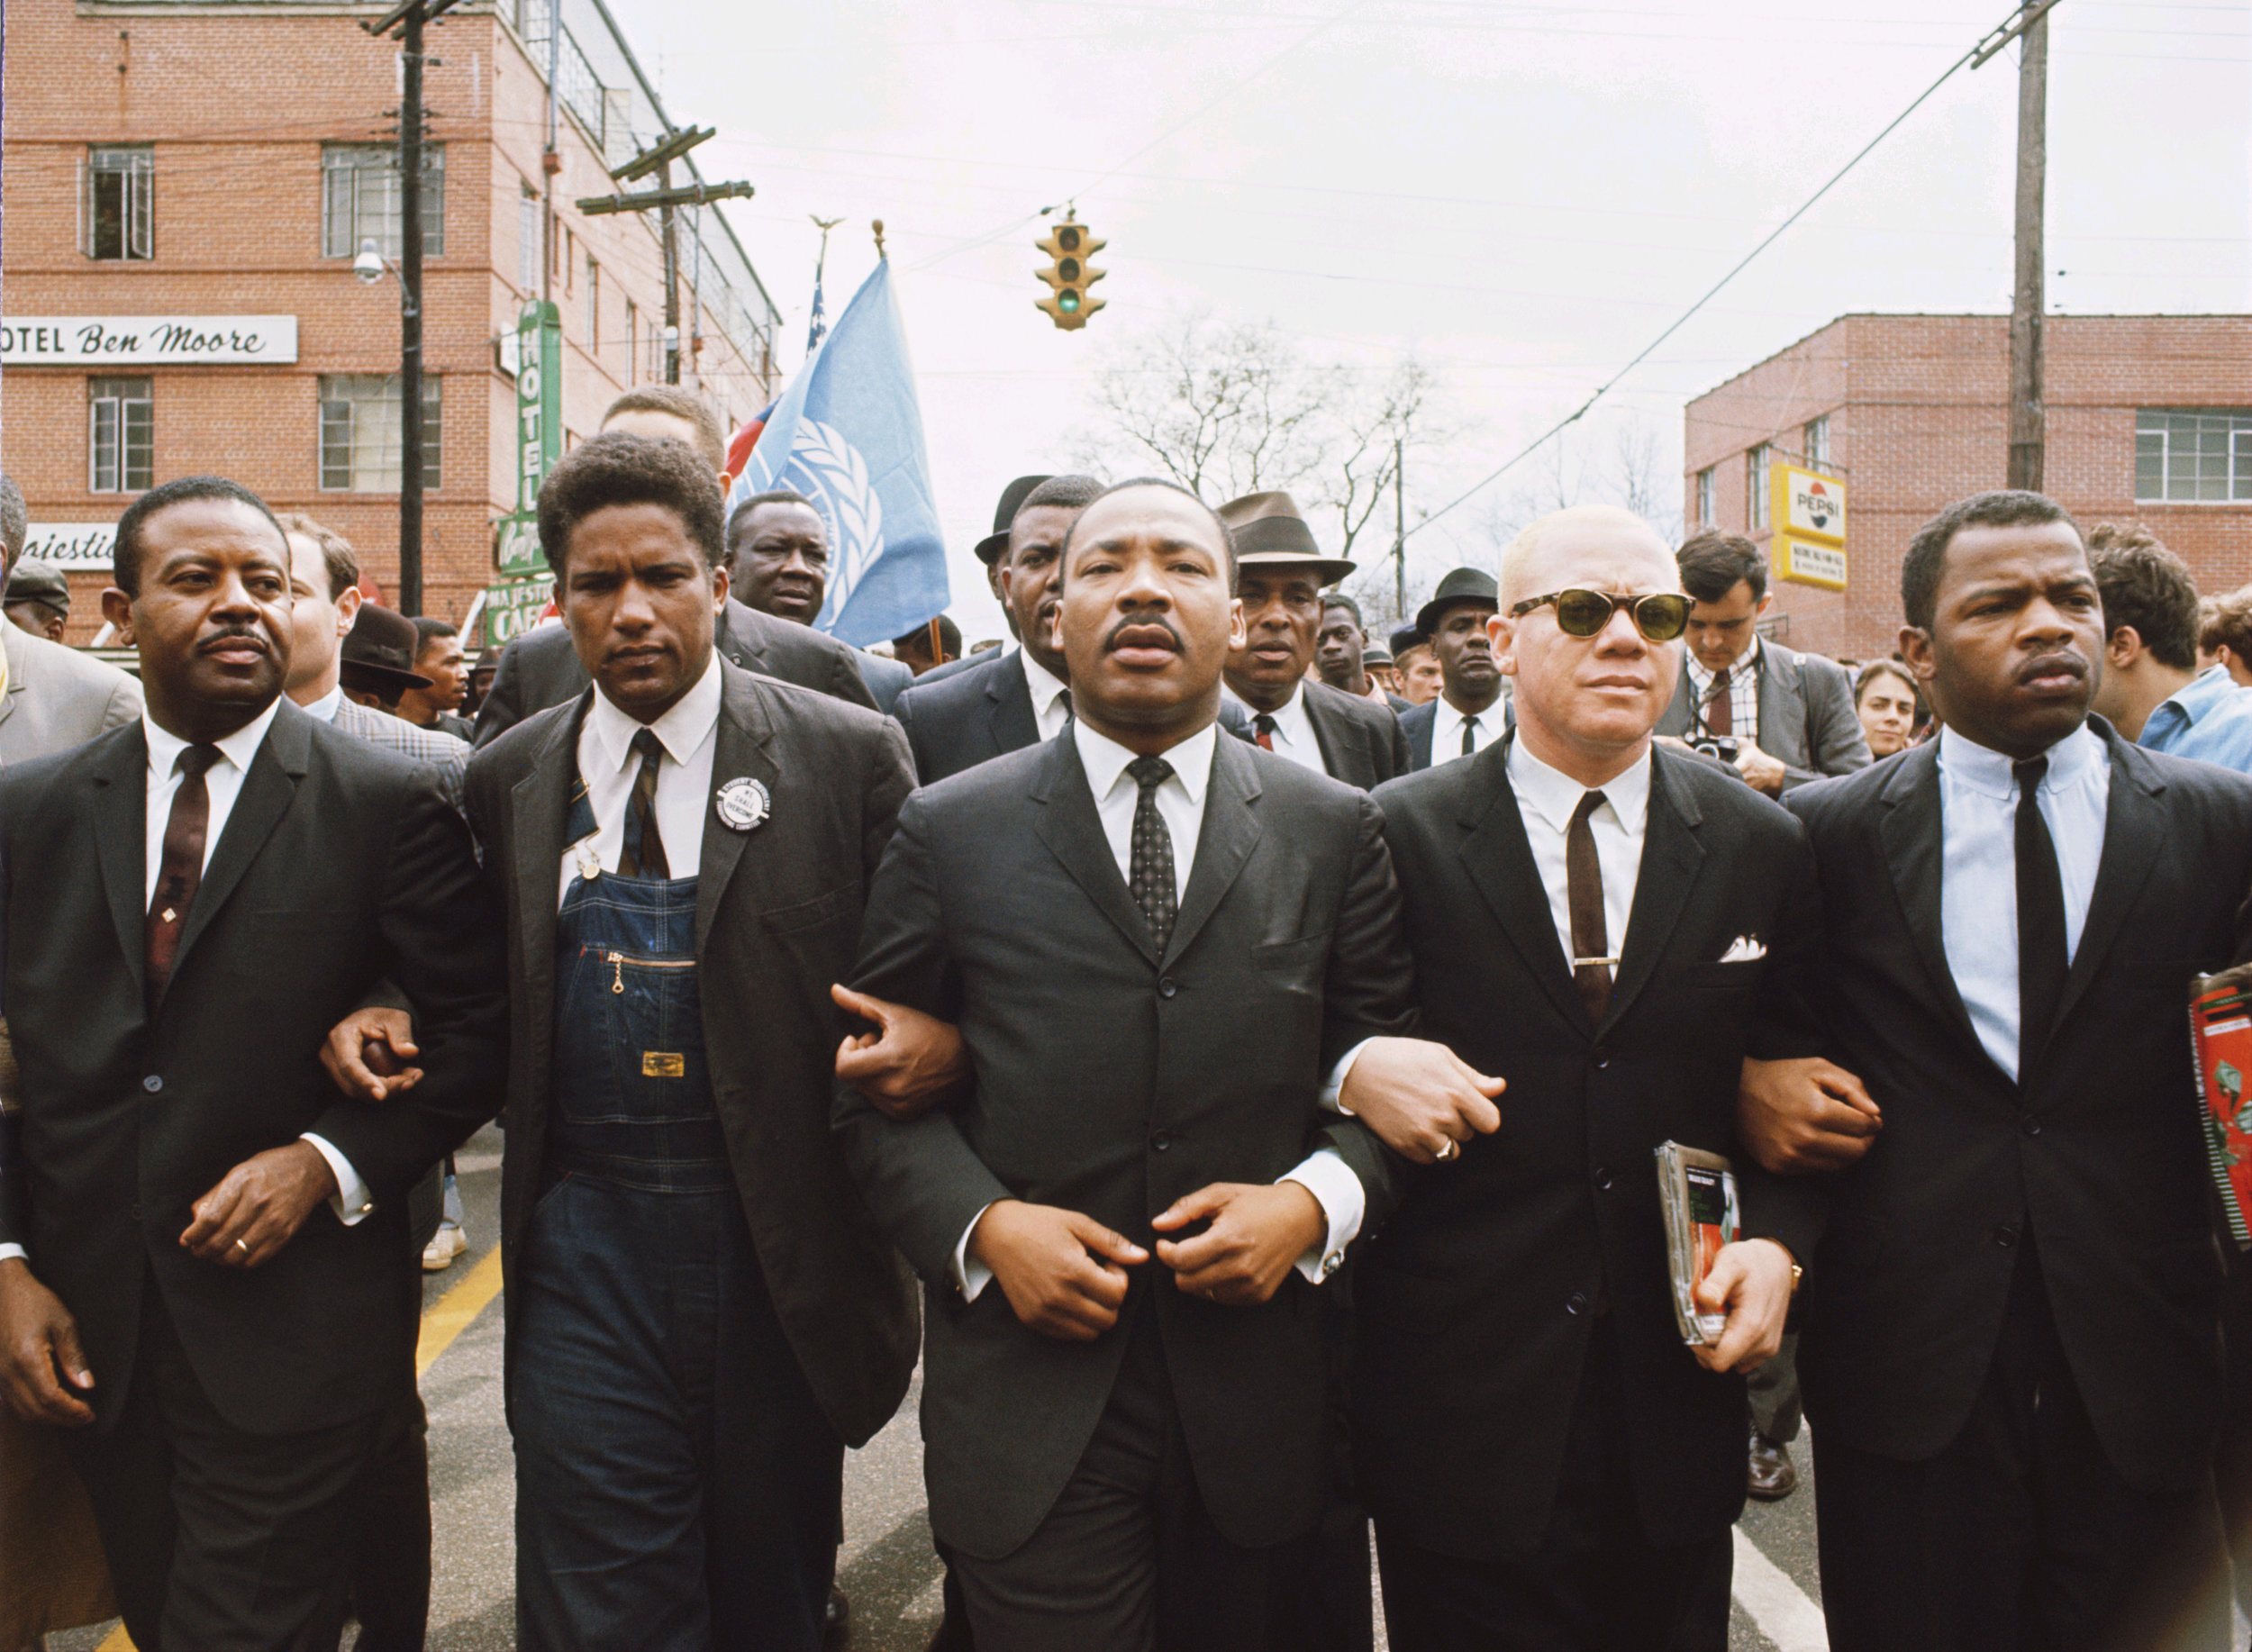 Martin Luther King leading march from Selma to Montgomery to protest lack of voting rights for African Americans. Beside King is John Lewis, Reverend Jesse Douglas, James Forman and Ralph Abernathy. March 1965.